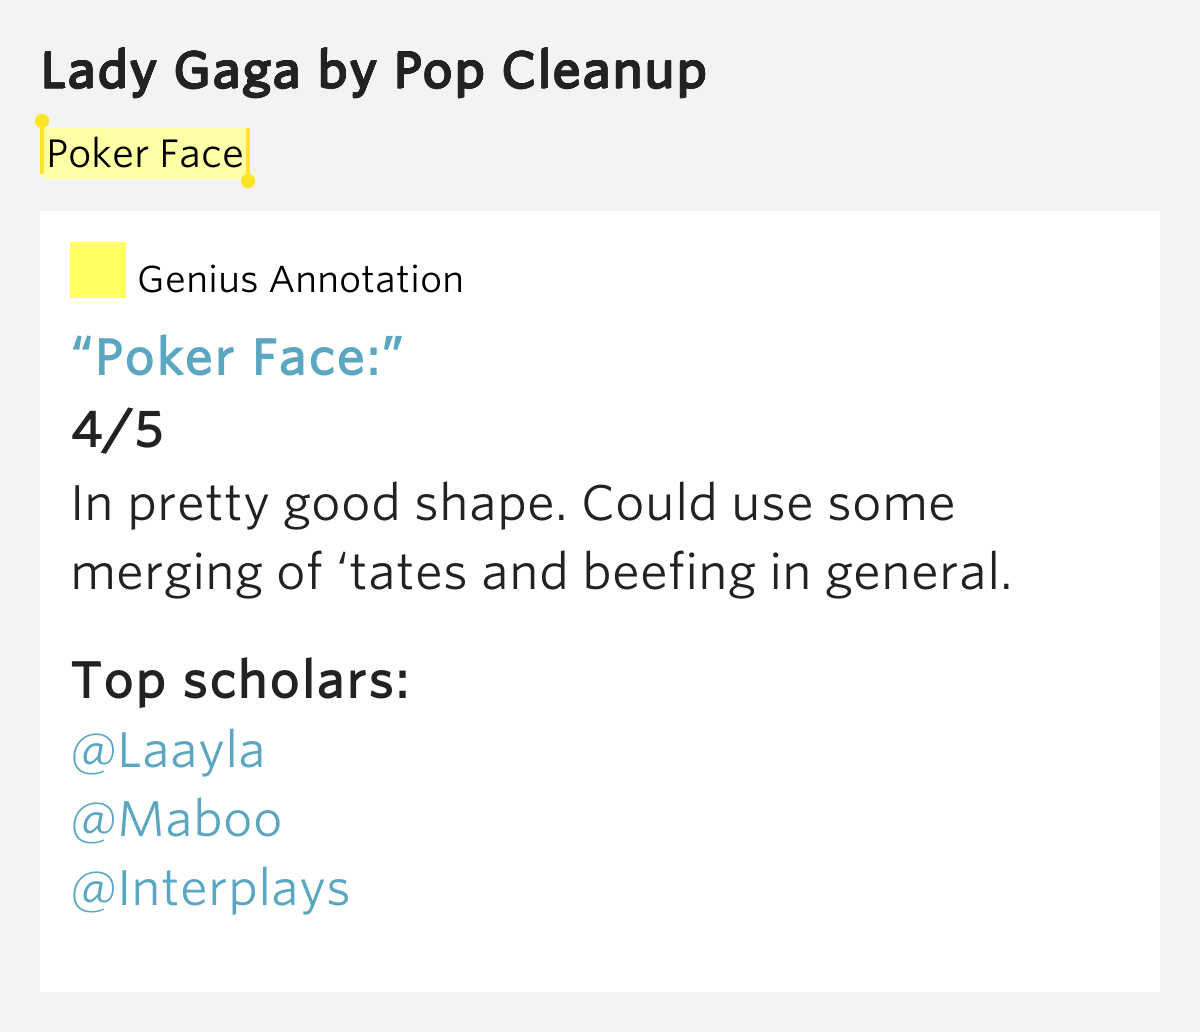 Poker face slang meaning